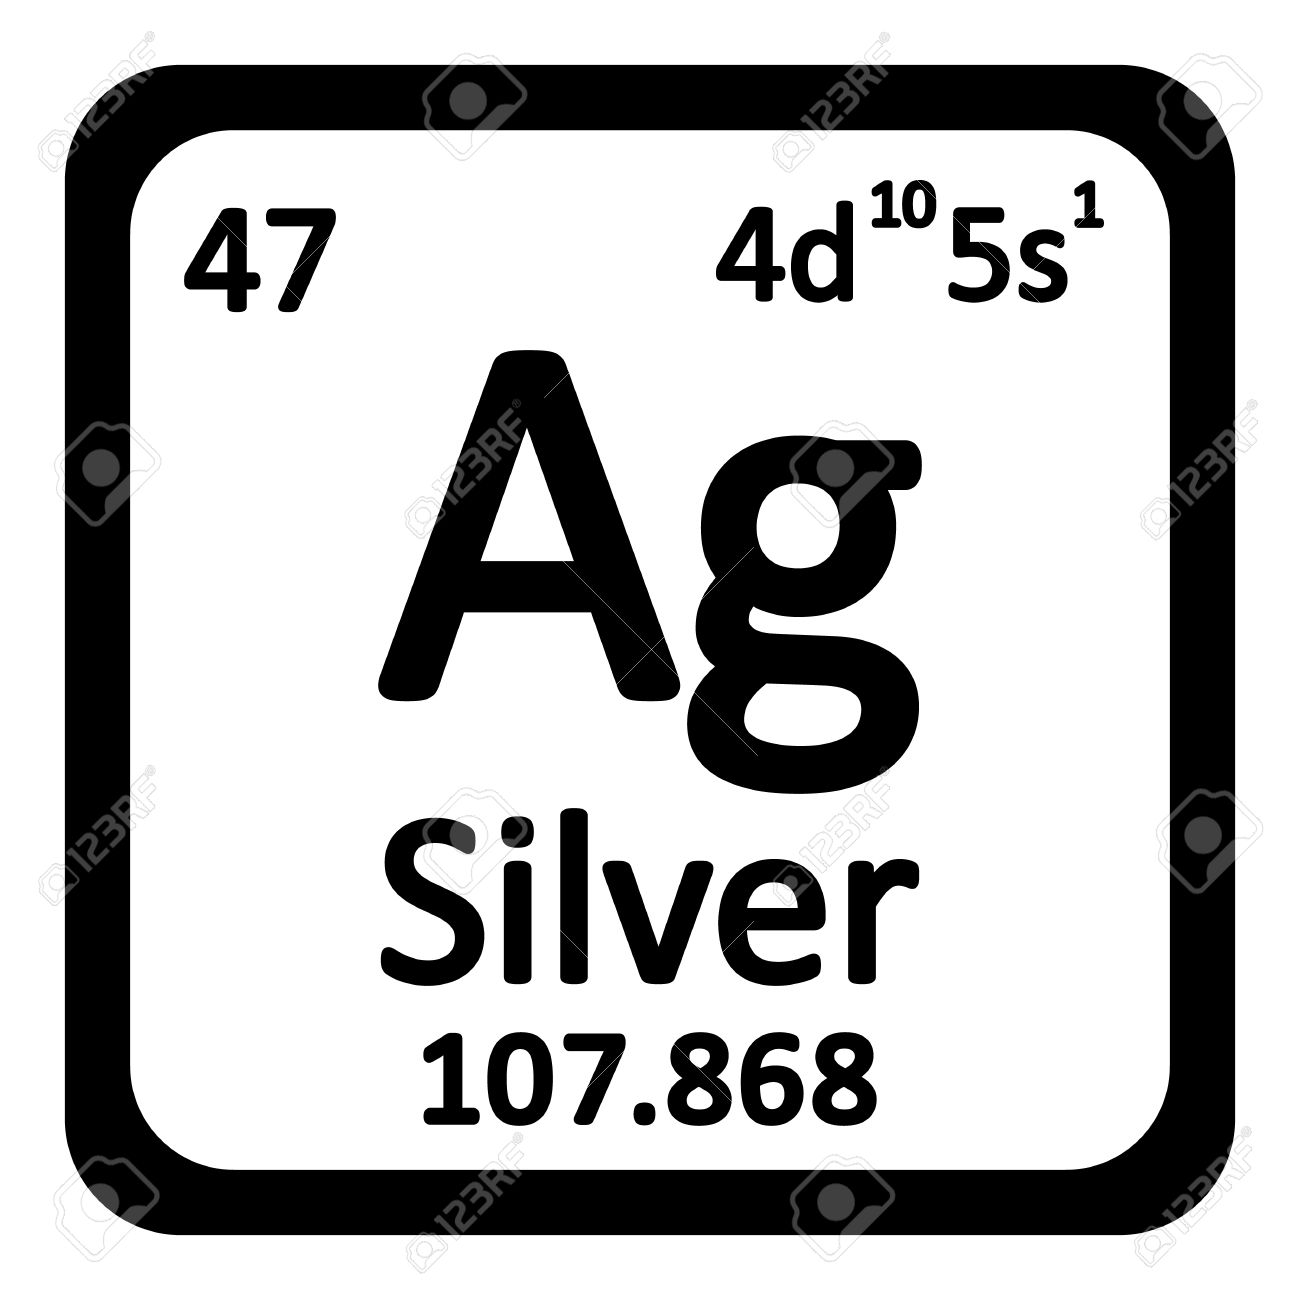 Periodic table 47 image collections periodic table images silver abbreviation periodic table gallery periodic table images periodic table 47 gallery periodic table images element gamestrikefo Choice Image